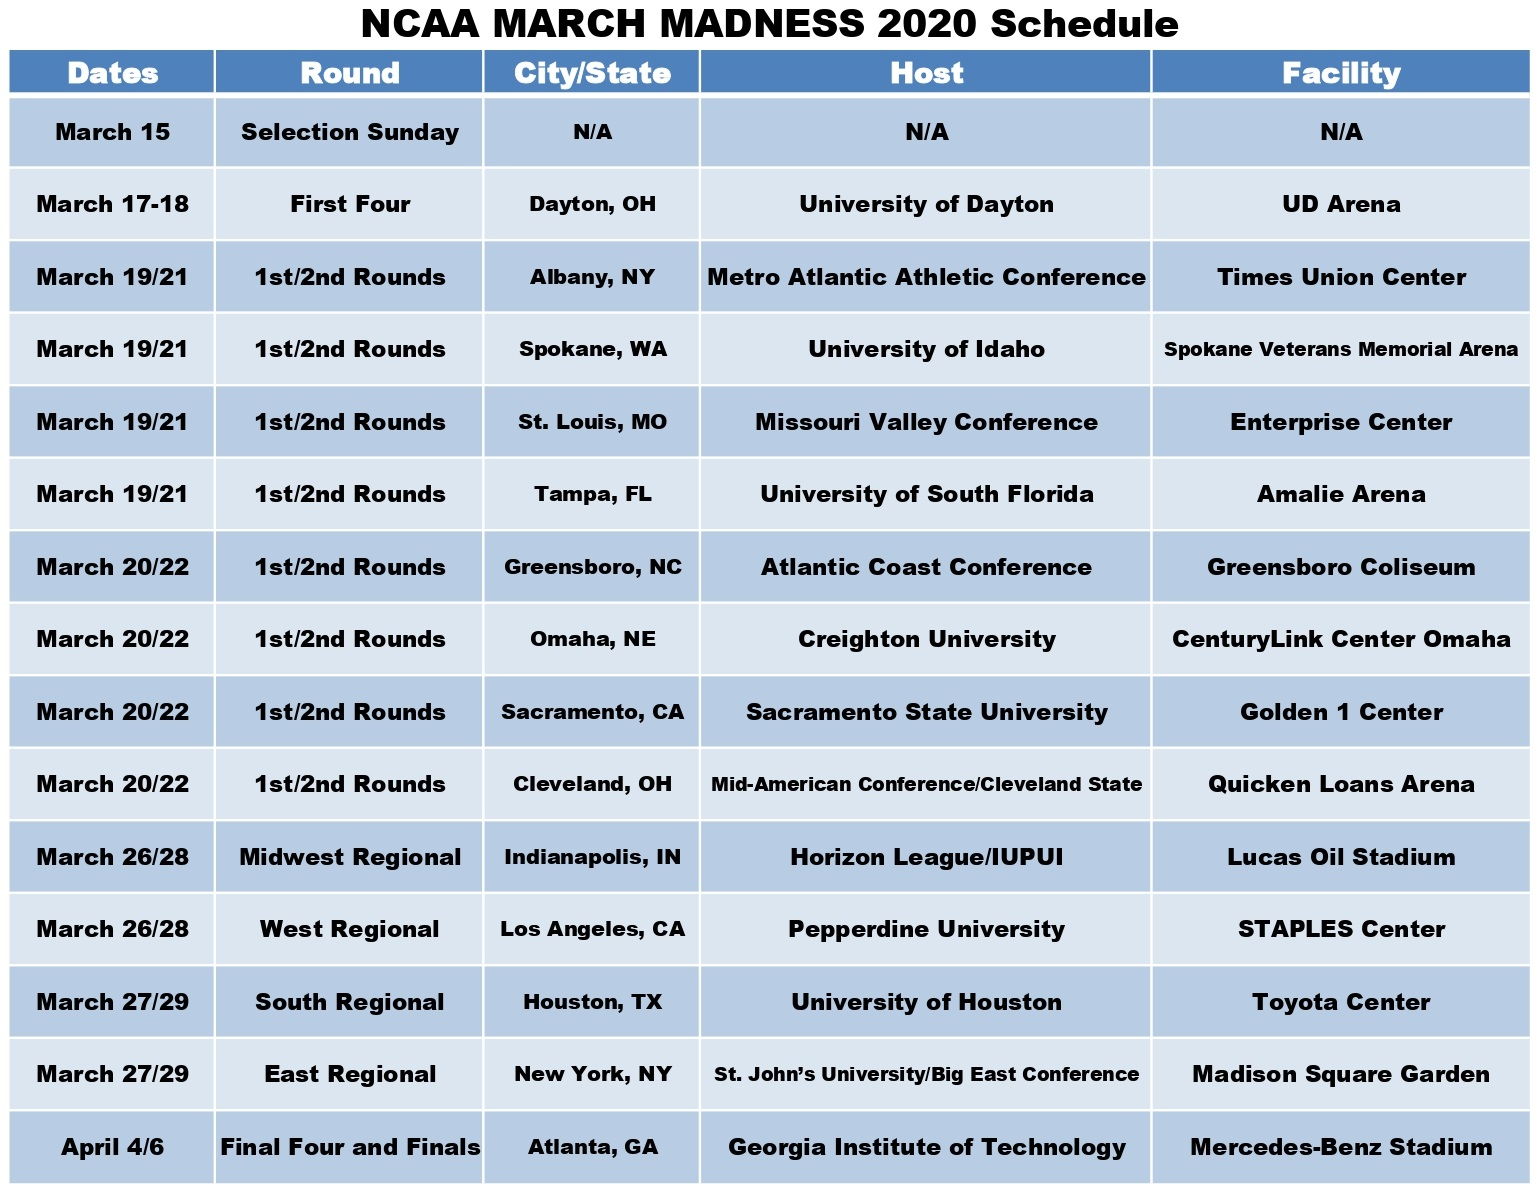 March Madness Schedule 2020